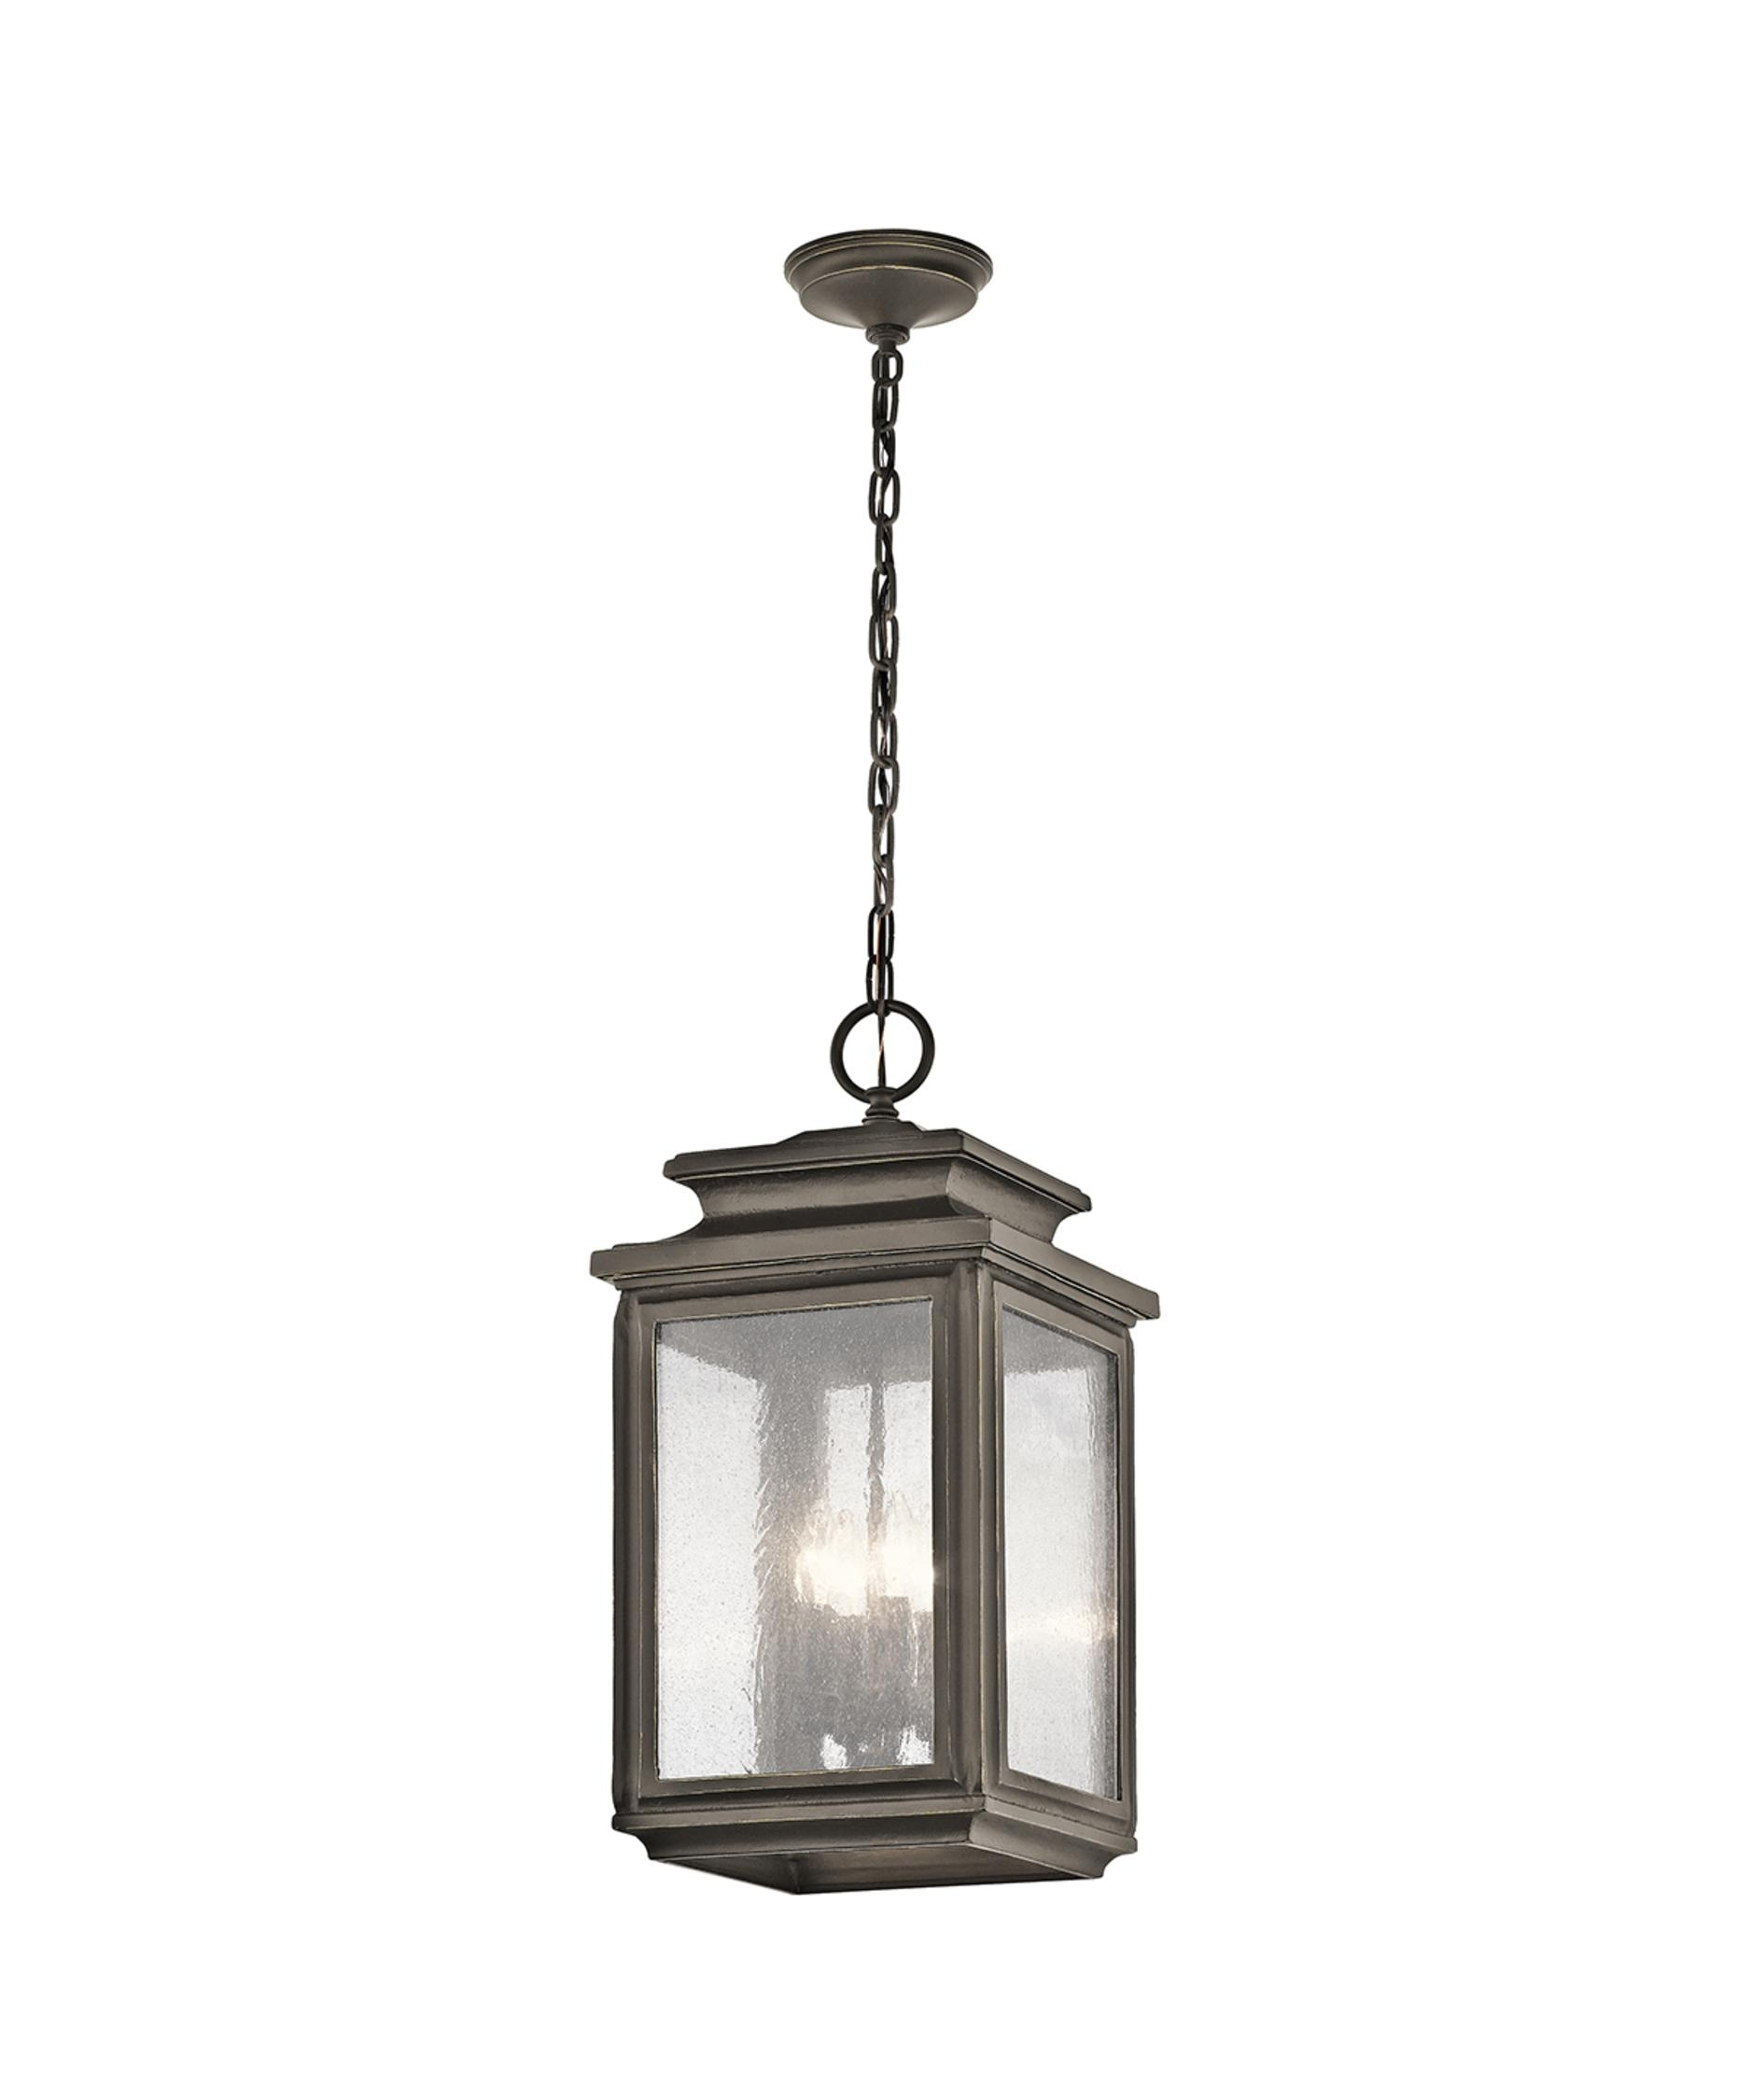 2019 Outdoor Pendant Lanterns With Kichler 49505 Wiscombe Park 11 Inch Wide 4 Light Outdoor Hanging (View 10 of 20)